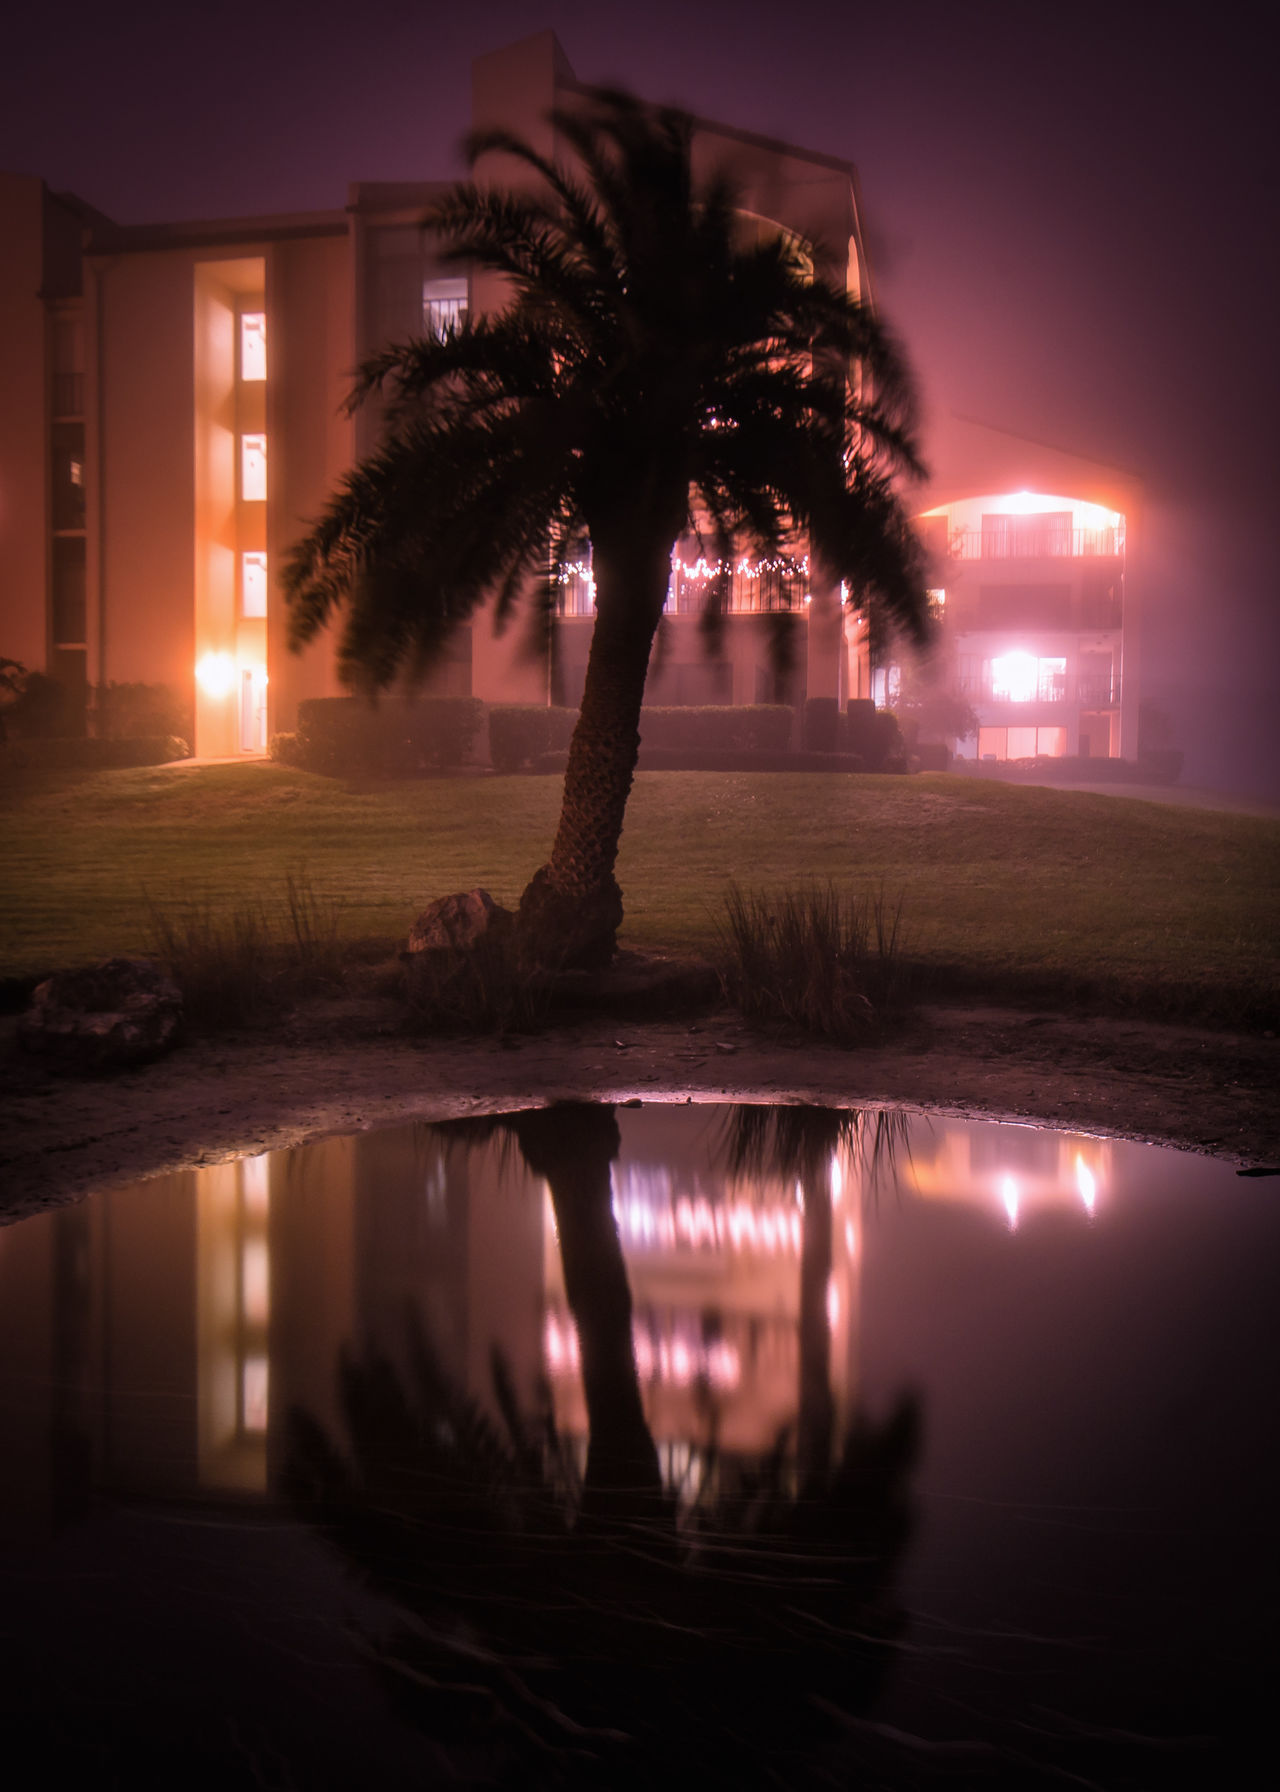 Atmospheric Mood Building Exterior Illuminated Nature Night No People Outdoors Palm Tree Reflection Silhouette Sky Sunset Swimming Pool Tranquil Scene Tranquility Tree Water 3XSPUnity